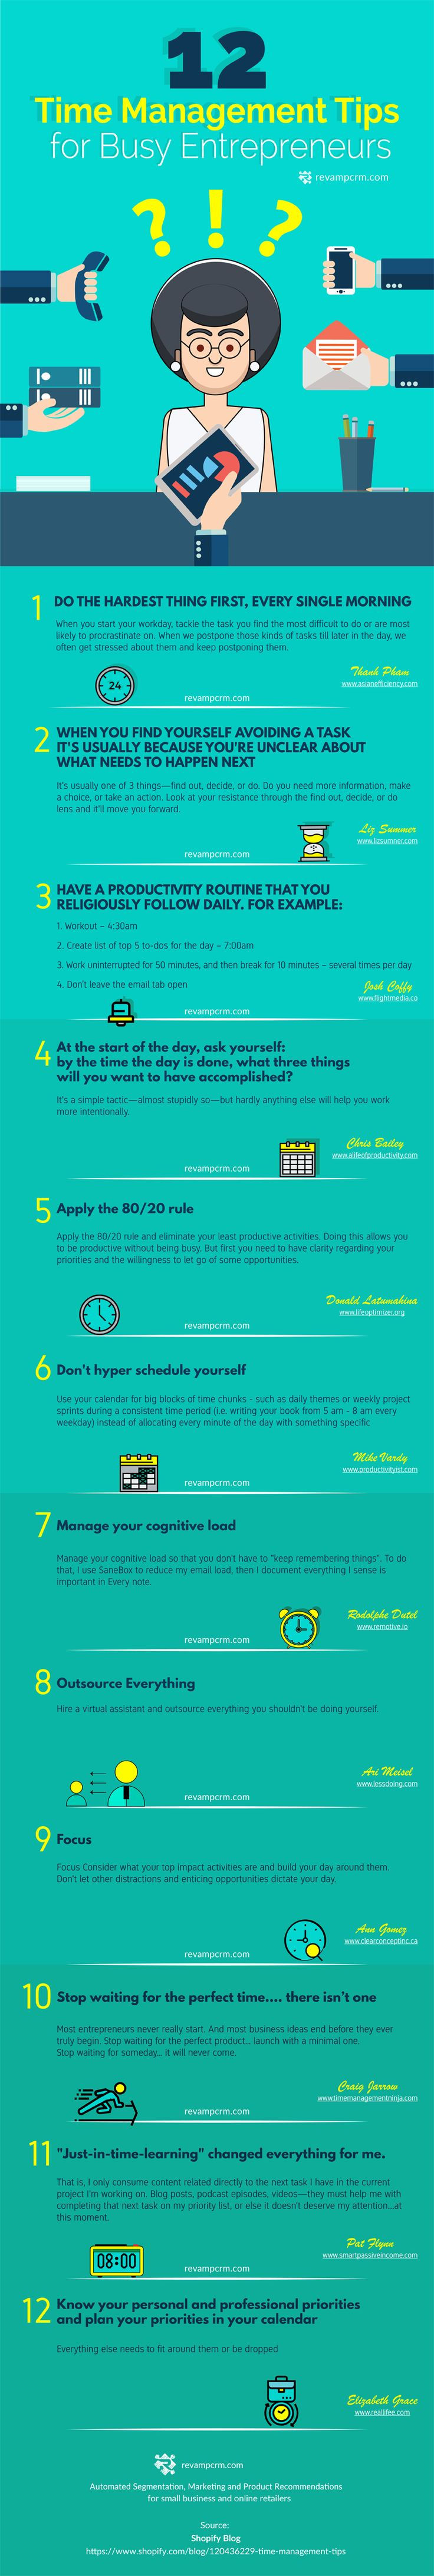 12 Time Management Tips For Busy Entrepreneurs #Infographic #Entrepreneur #TimeManagement